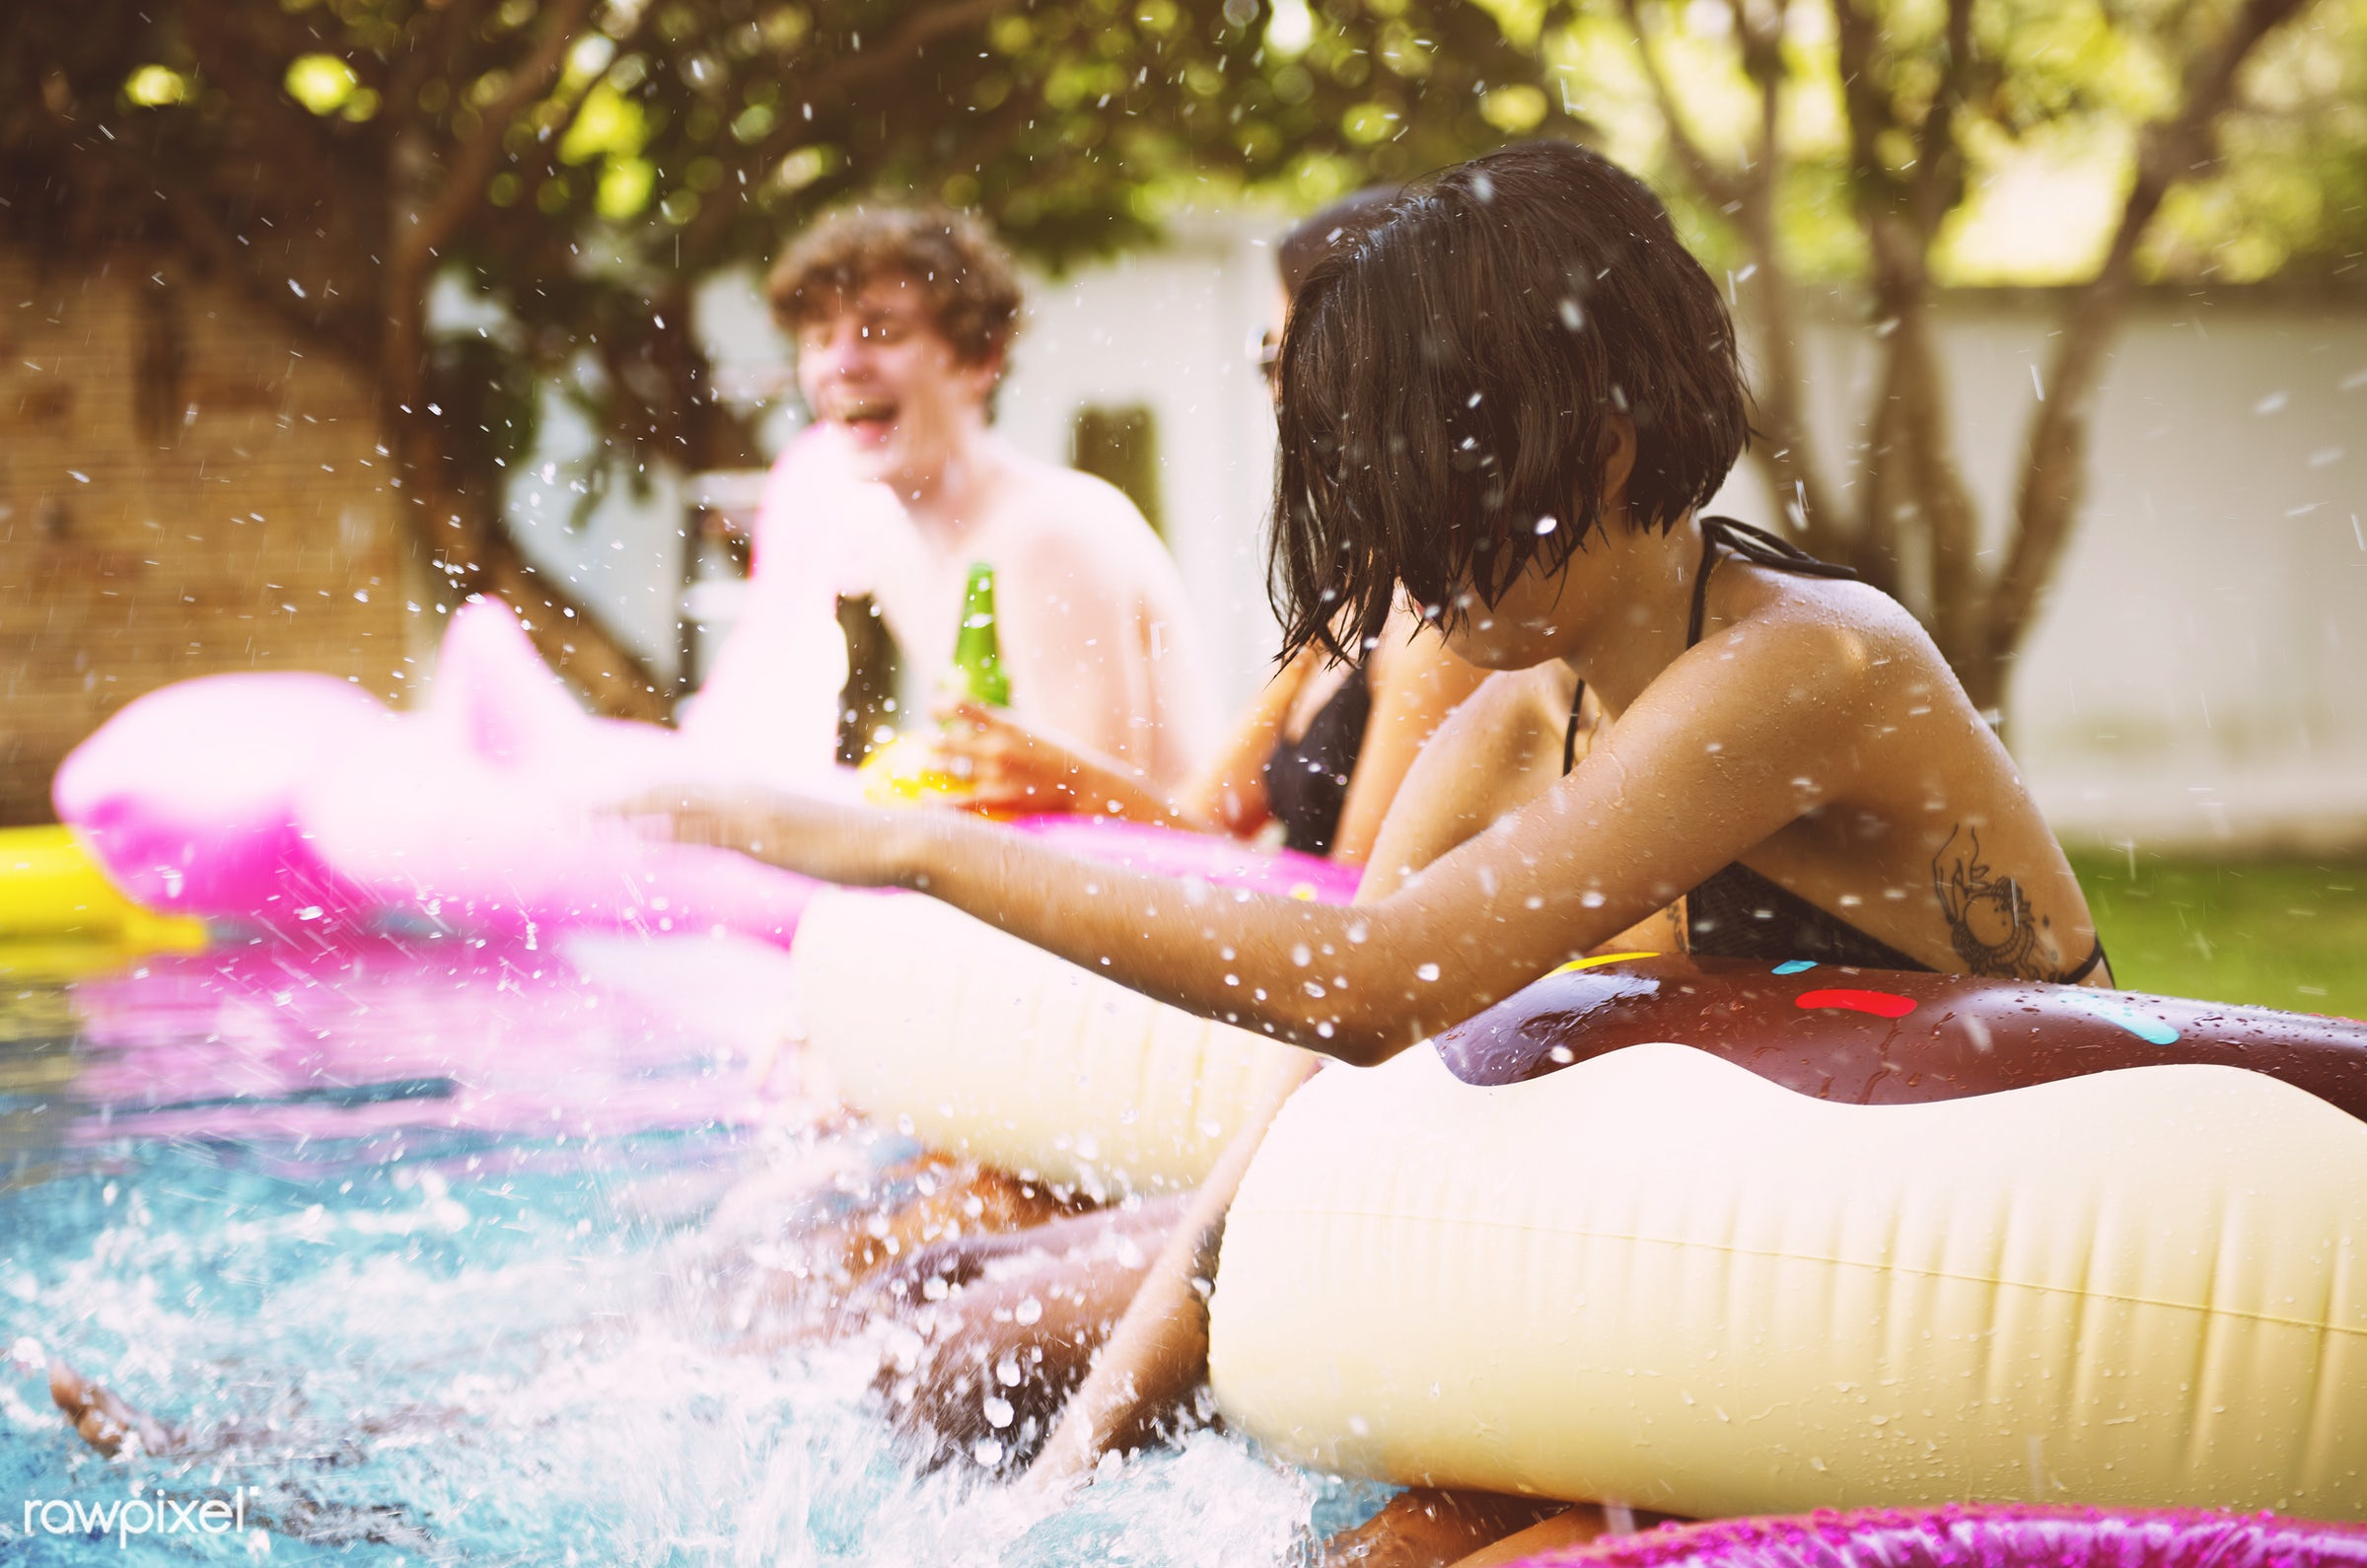 beverage, bottles, can, cheerful, diverse, drink, enjoying, floating, friends, fun, group, happiness, inflatable, joyful,...